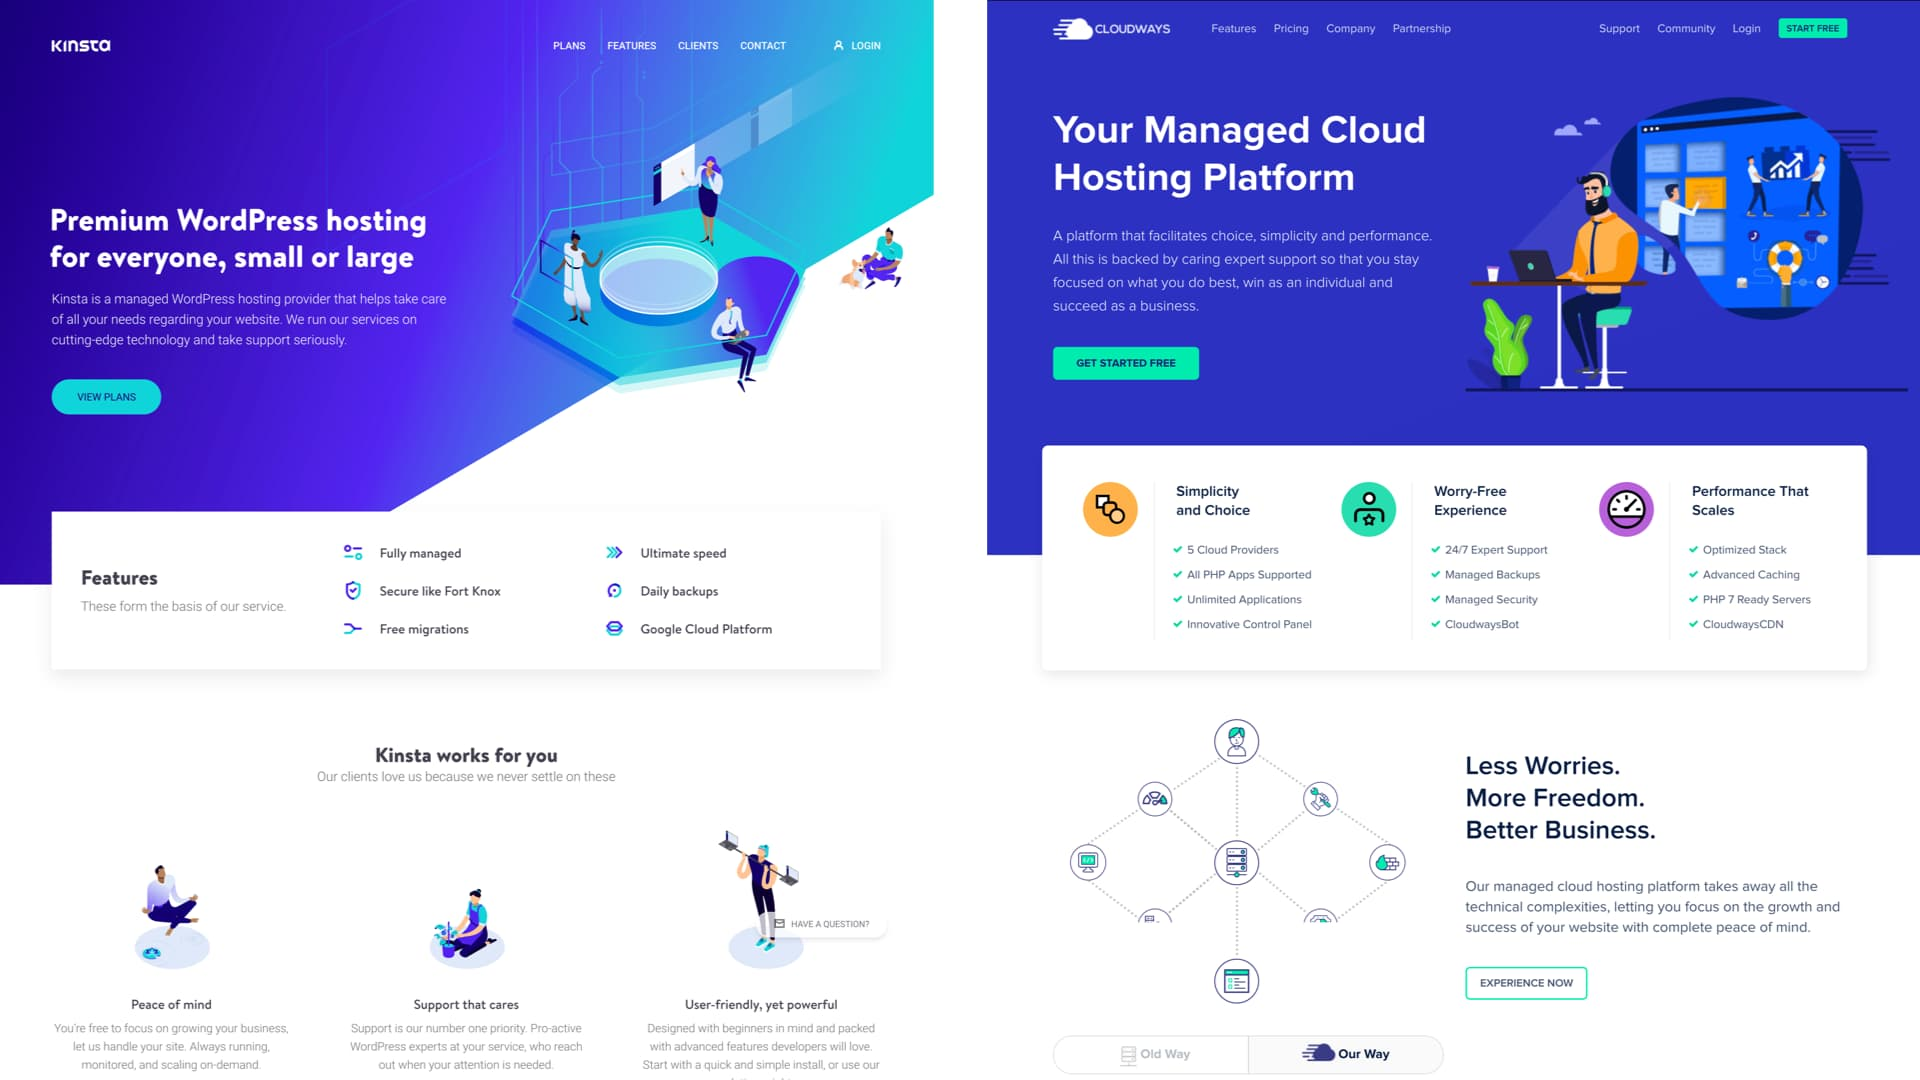 Kinsta vs Cloudways